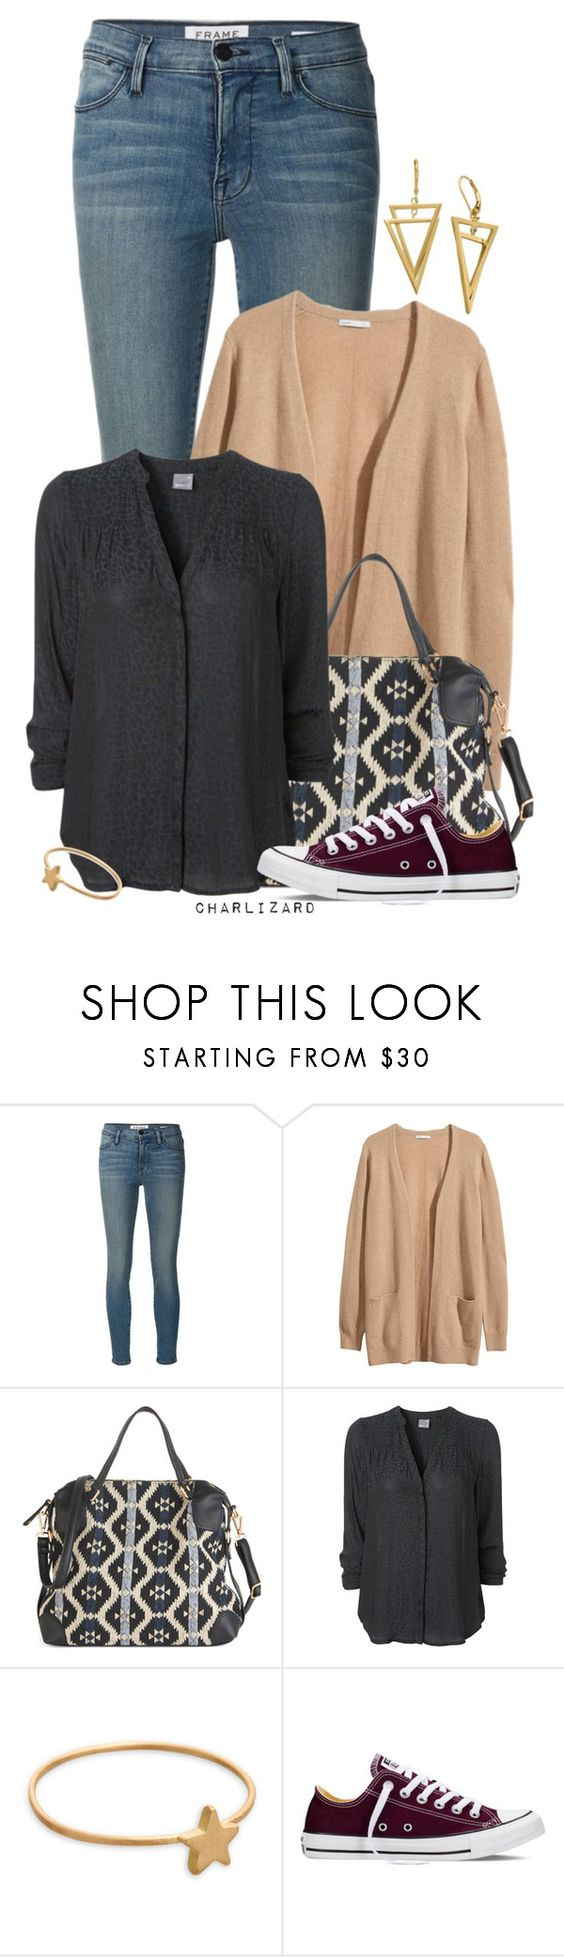 """Boho Bag"" by charlizard ❤ liked on Polyvore featuring Frame Denim, H&M, Marian Maurer and Converse"